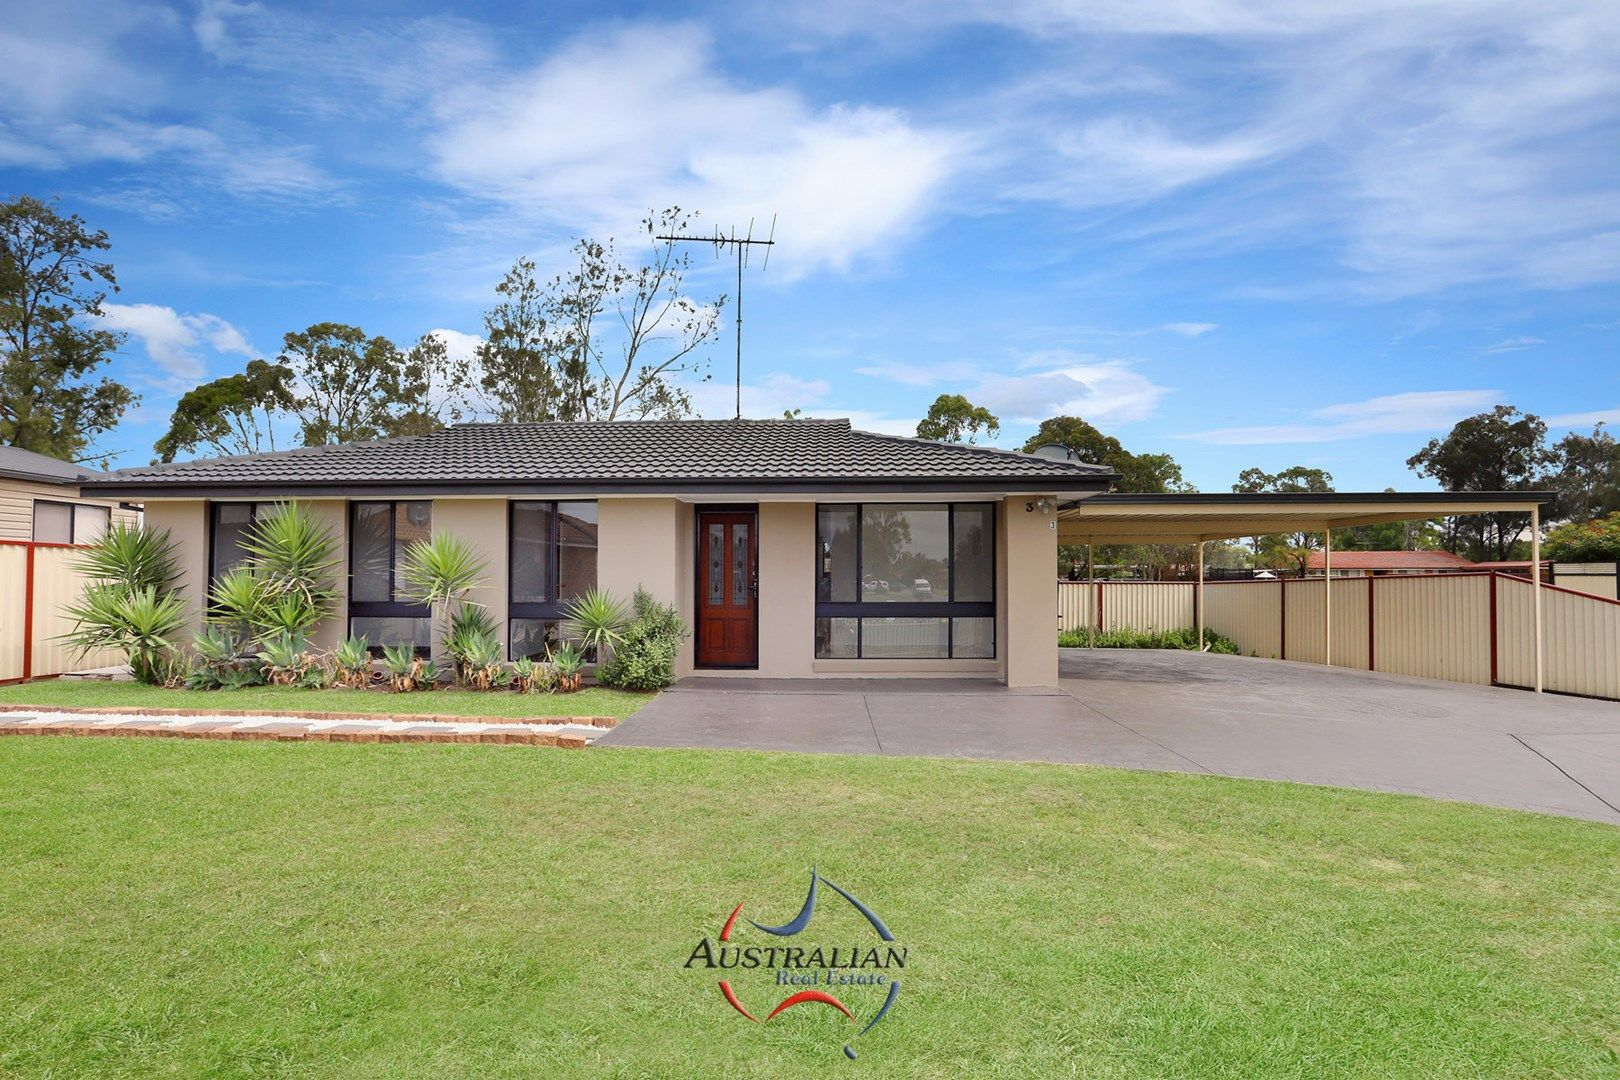 3 & 3a Meru Place, St Clair NSW 2759, Image 0